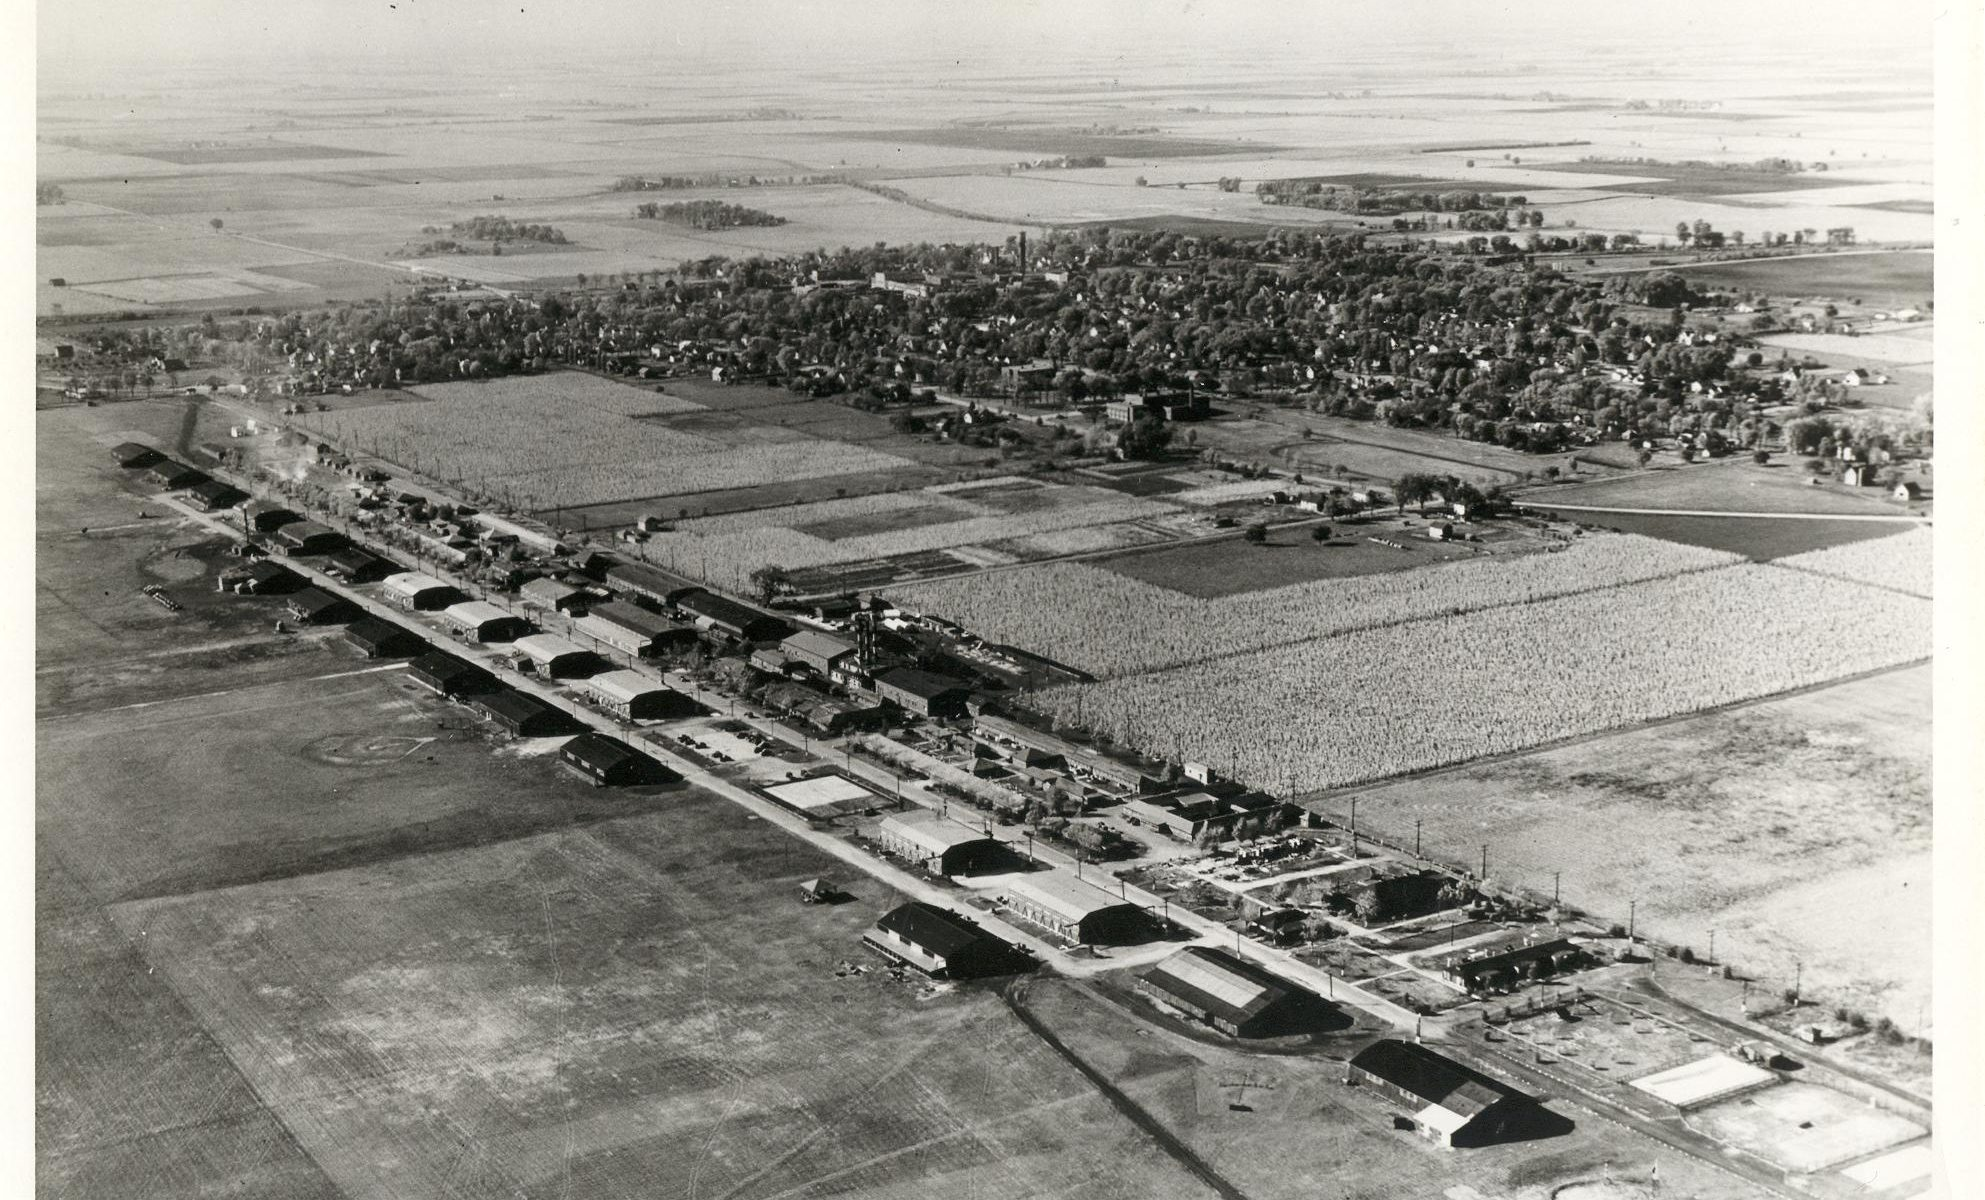 Aerial photograph of Chanute Air Force base in the 1920s with the village of Rantoul in the background.